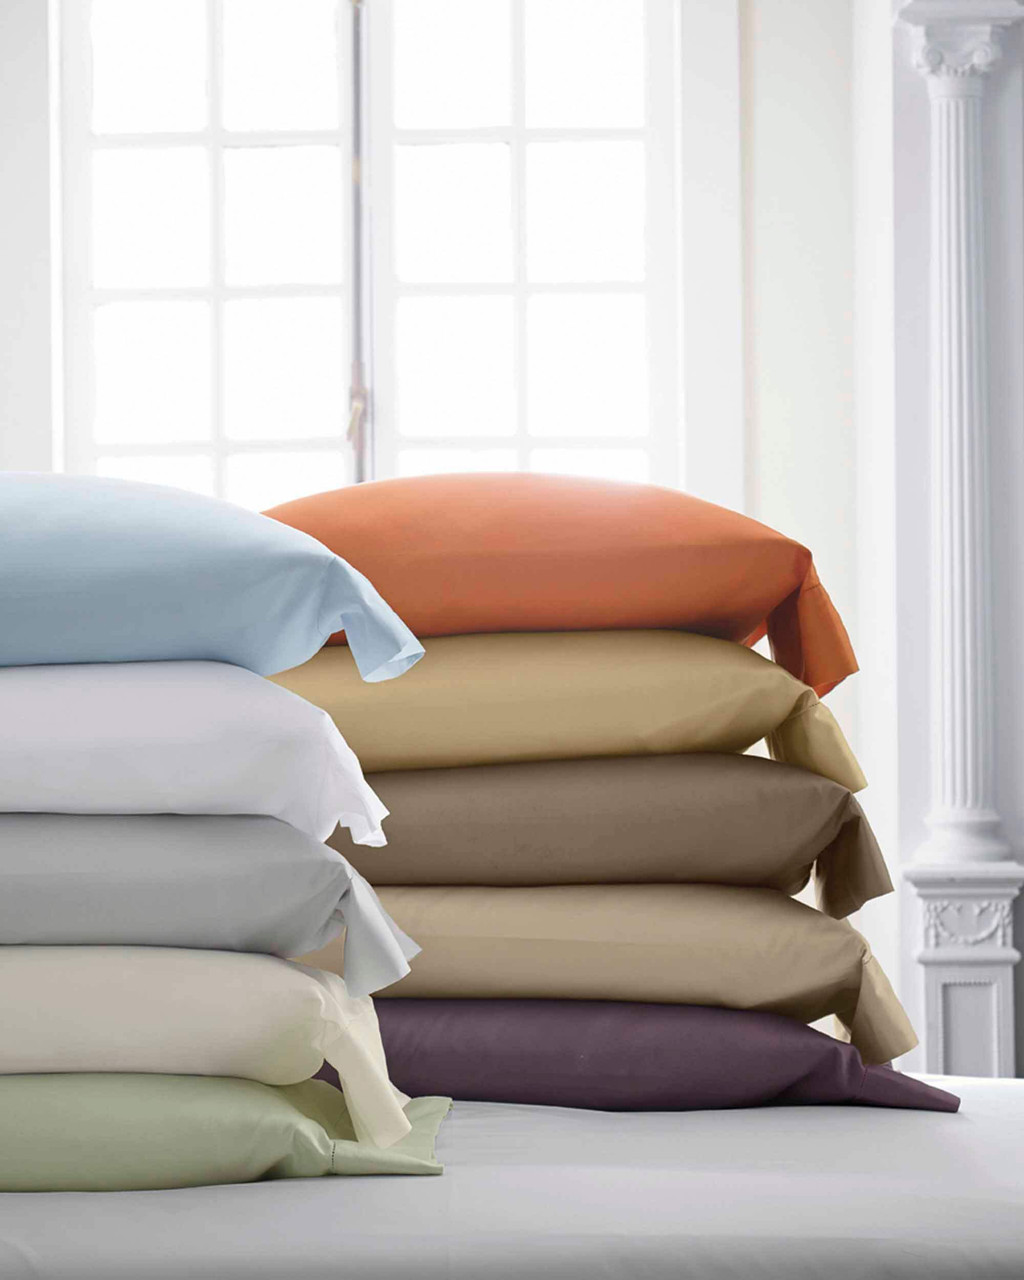 scandia down stresa duvet cover - knife edge w/ button, scandia home stresa duvet cover - knife edge w/ button, scandia down linens, scandia home linens